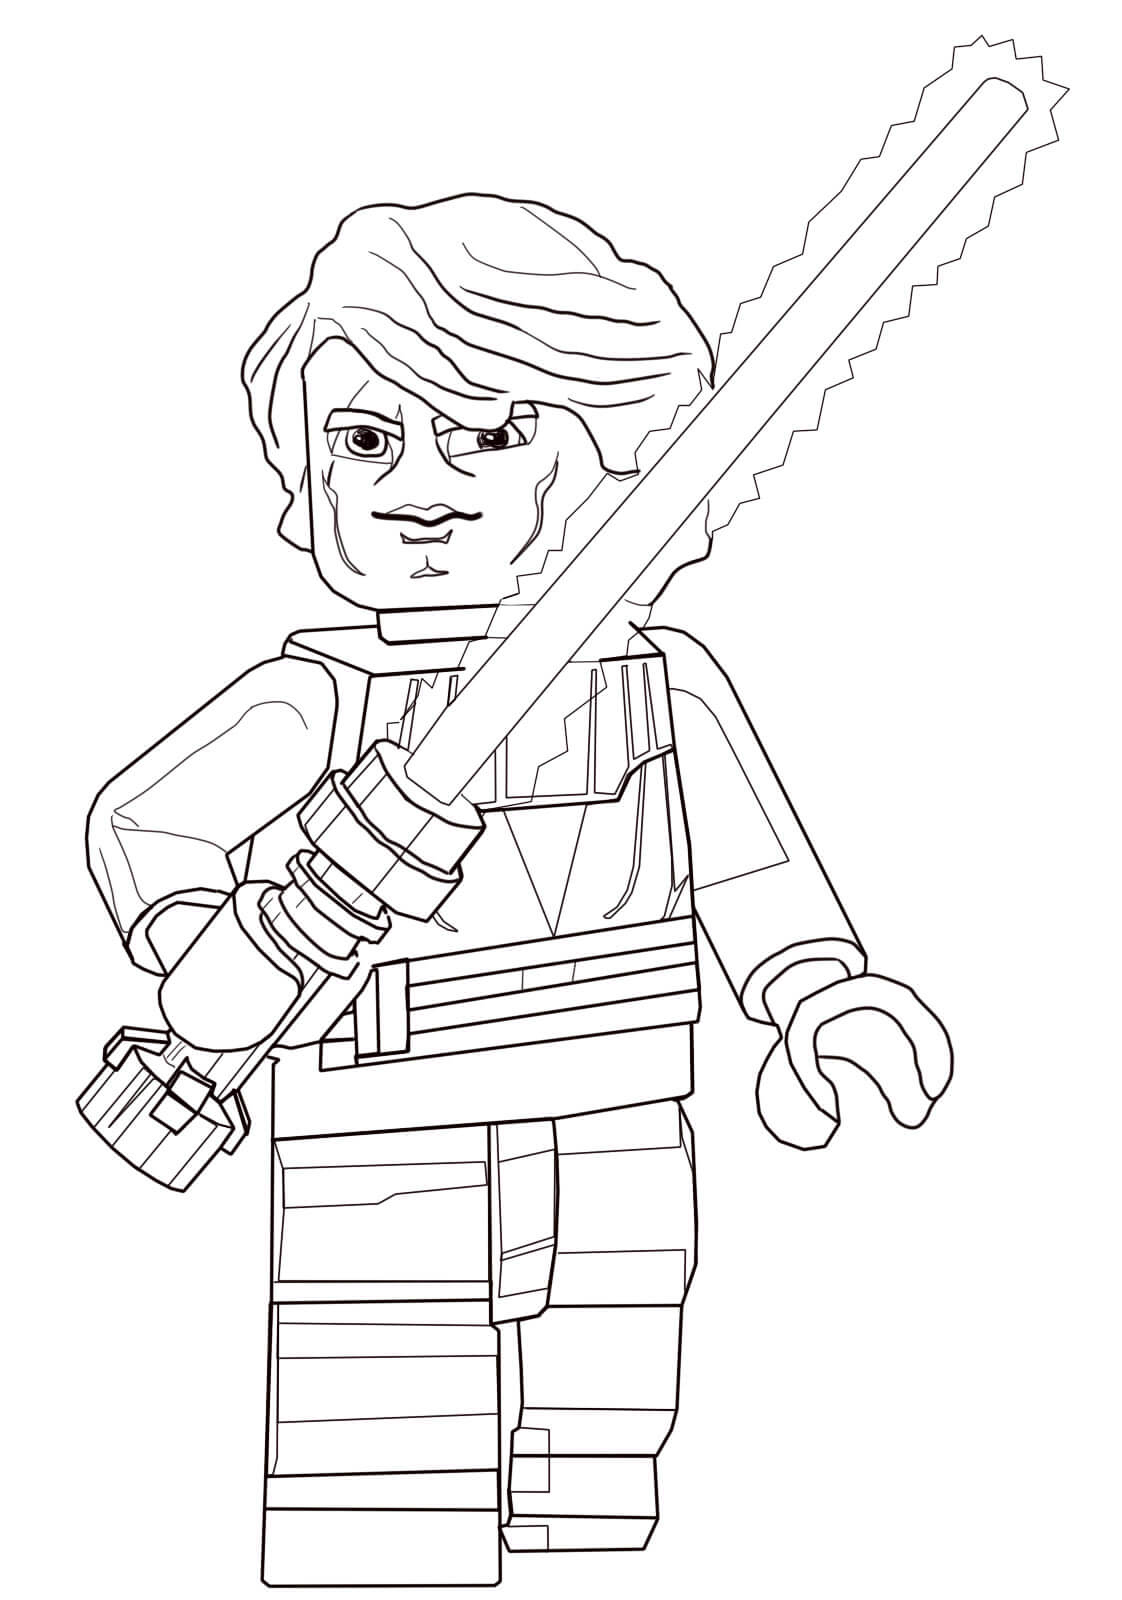 Anakin Skywalker from Lego Star Wars